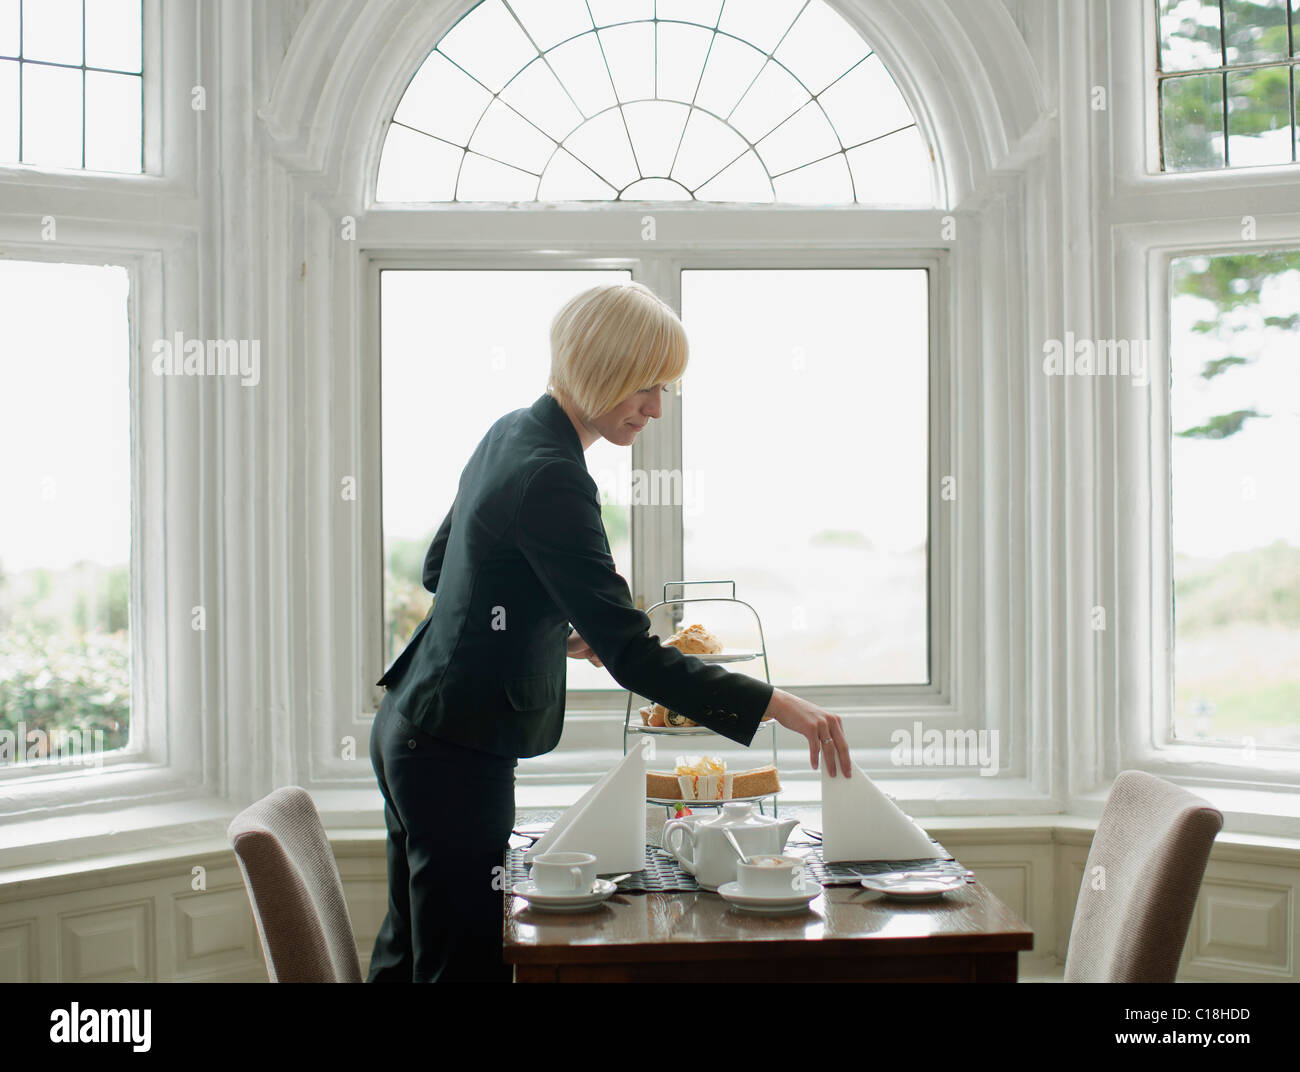 Woman Setting Up Table   Stock Image